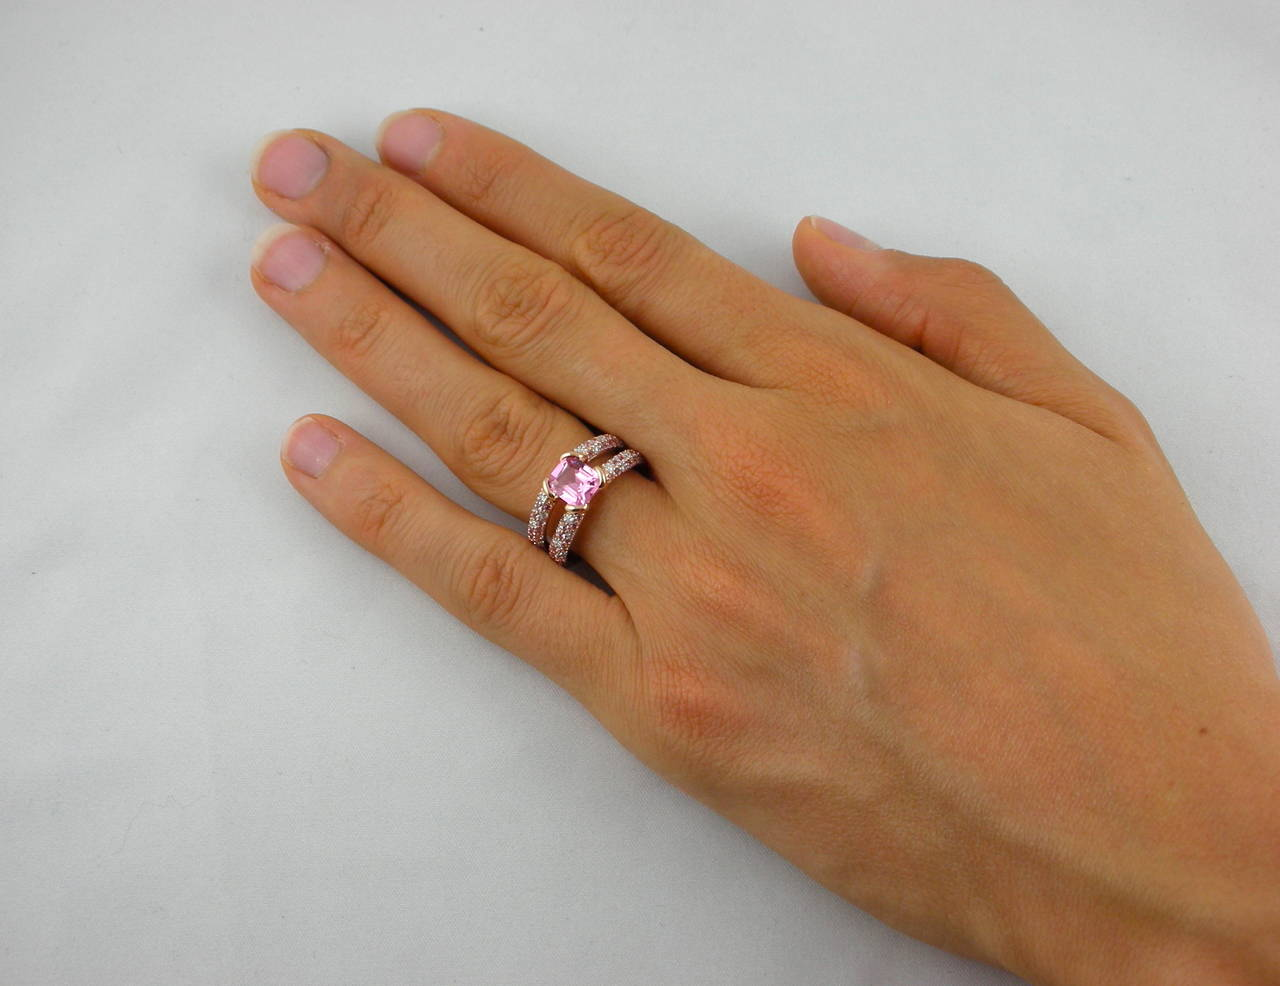 Jona Pink Spinel Pink Sapphire White Diamond 18 Karat Rose Gold Ring In New Condition For Sale In Torino, IT